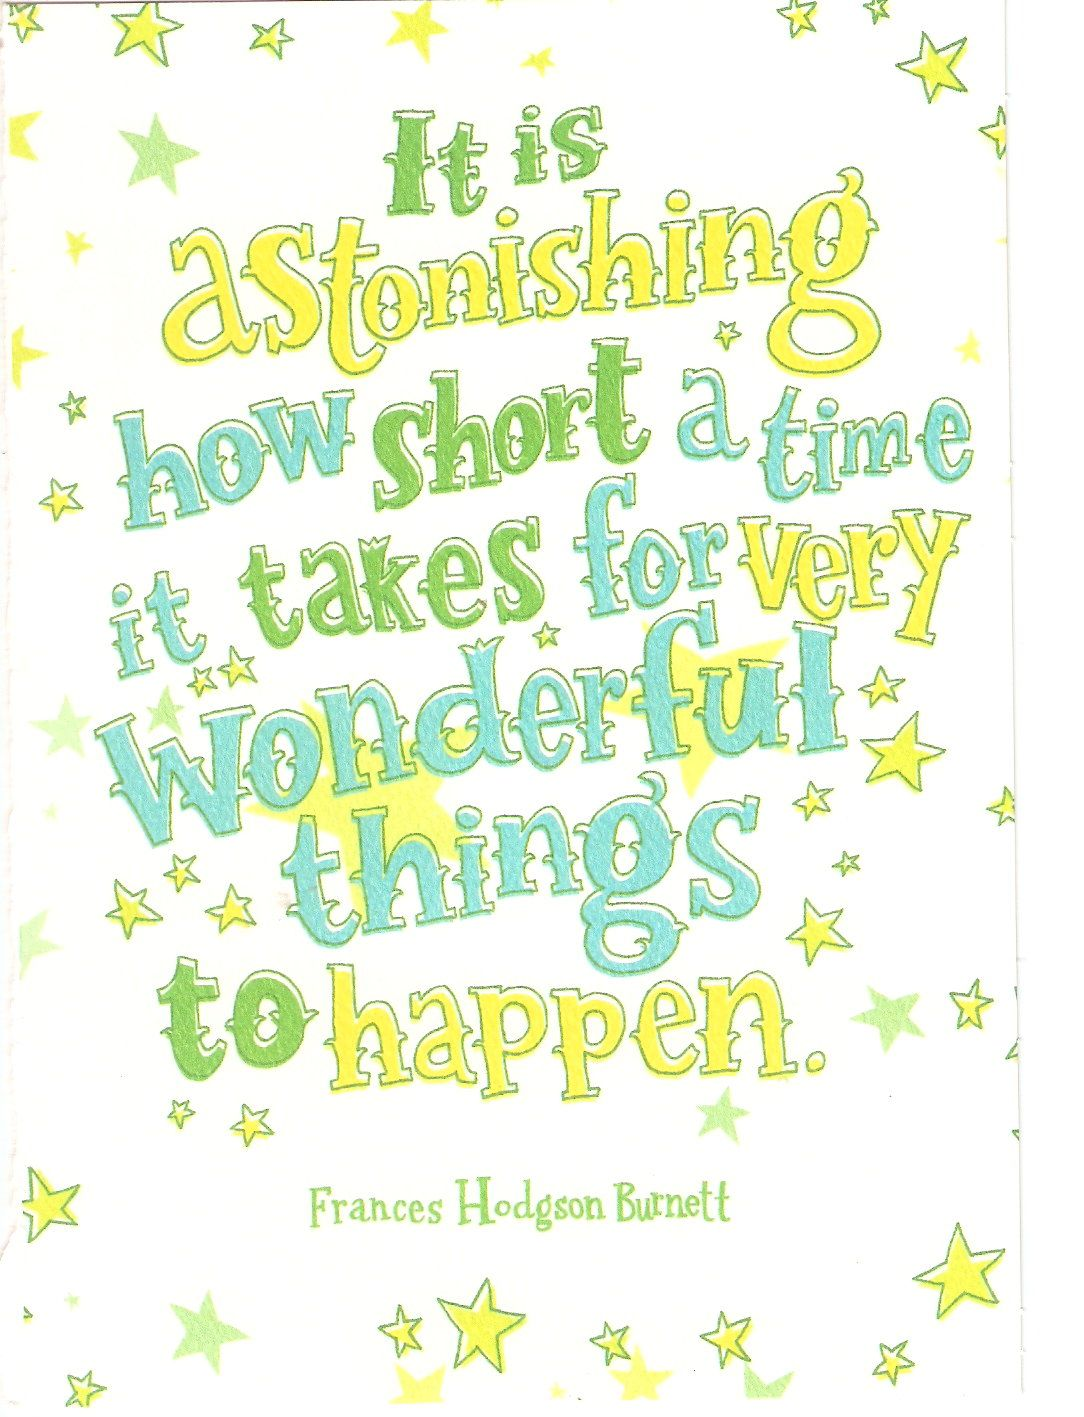 So True Especially When Youve Been Waiting For Good News And Yes Words Of Wisdom Again From A 99 Cent Trader Joes Greeting Card